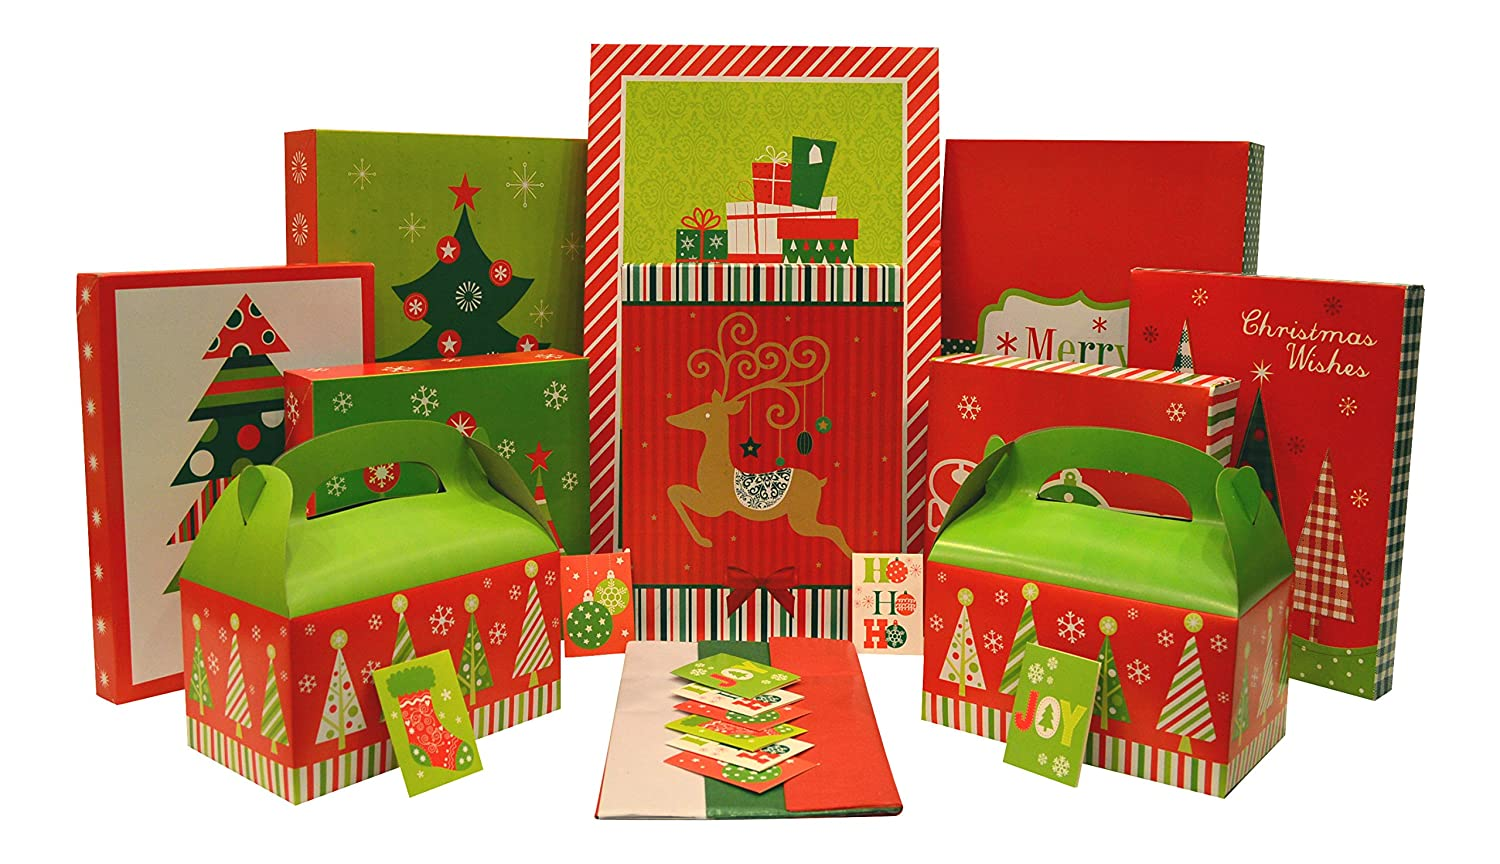 Amazon christmas gift box set kit contains gift boxes gift amazon christmas gift box set kit contains gift boxes gift tags tissue paper everything needed to wrap presents 36 piece set health personal negle Images